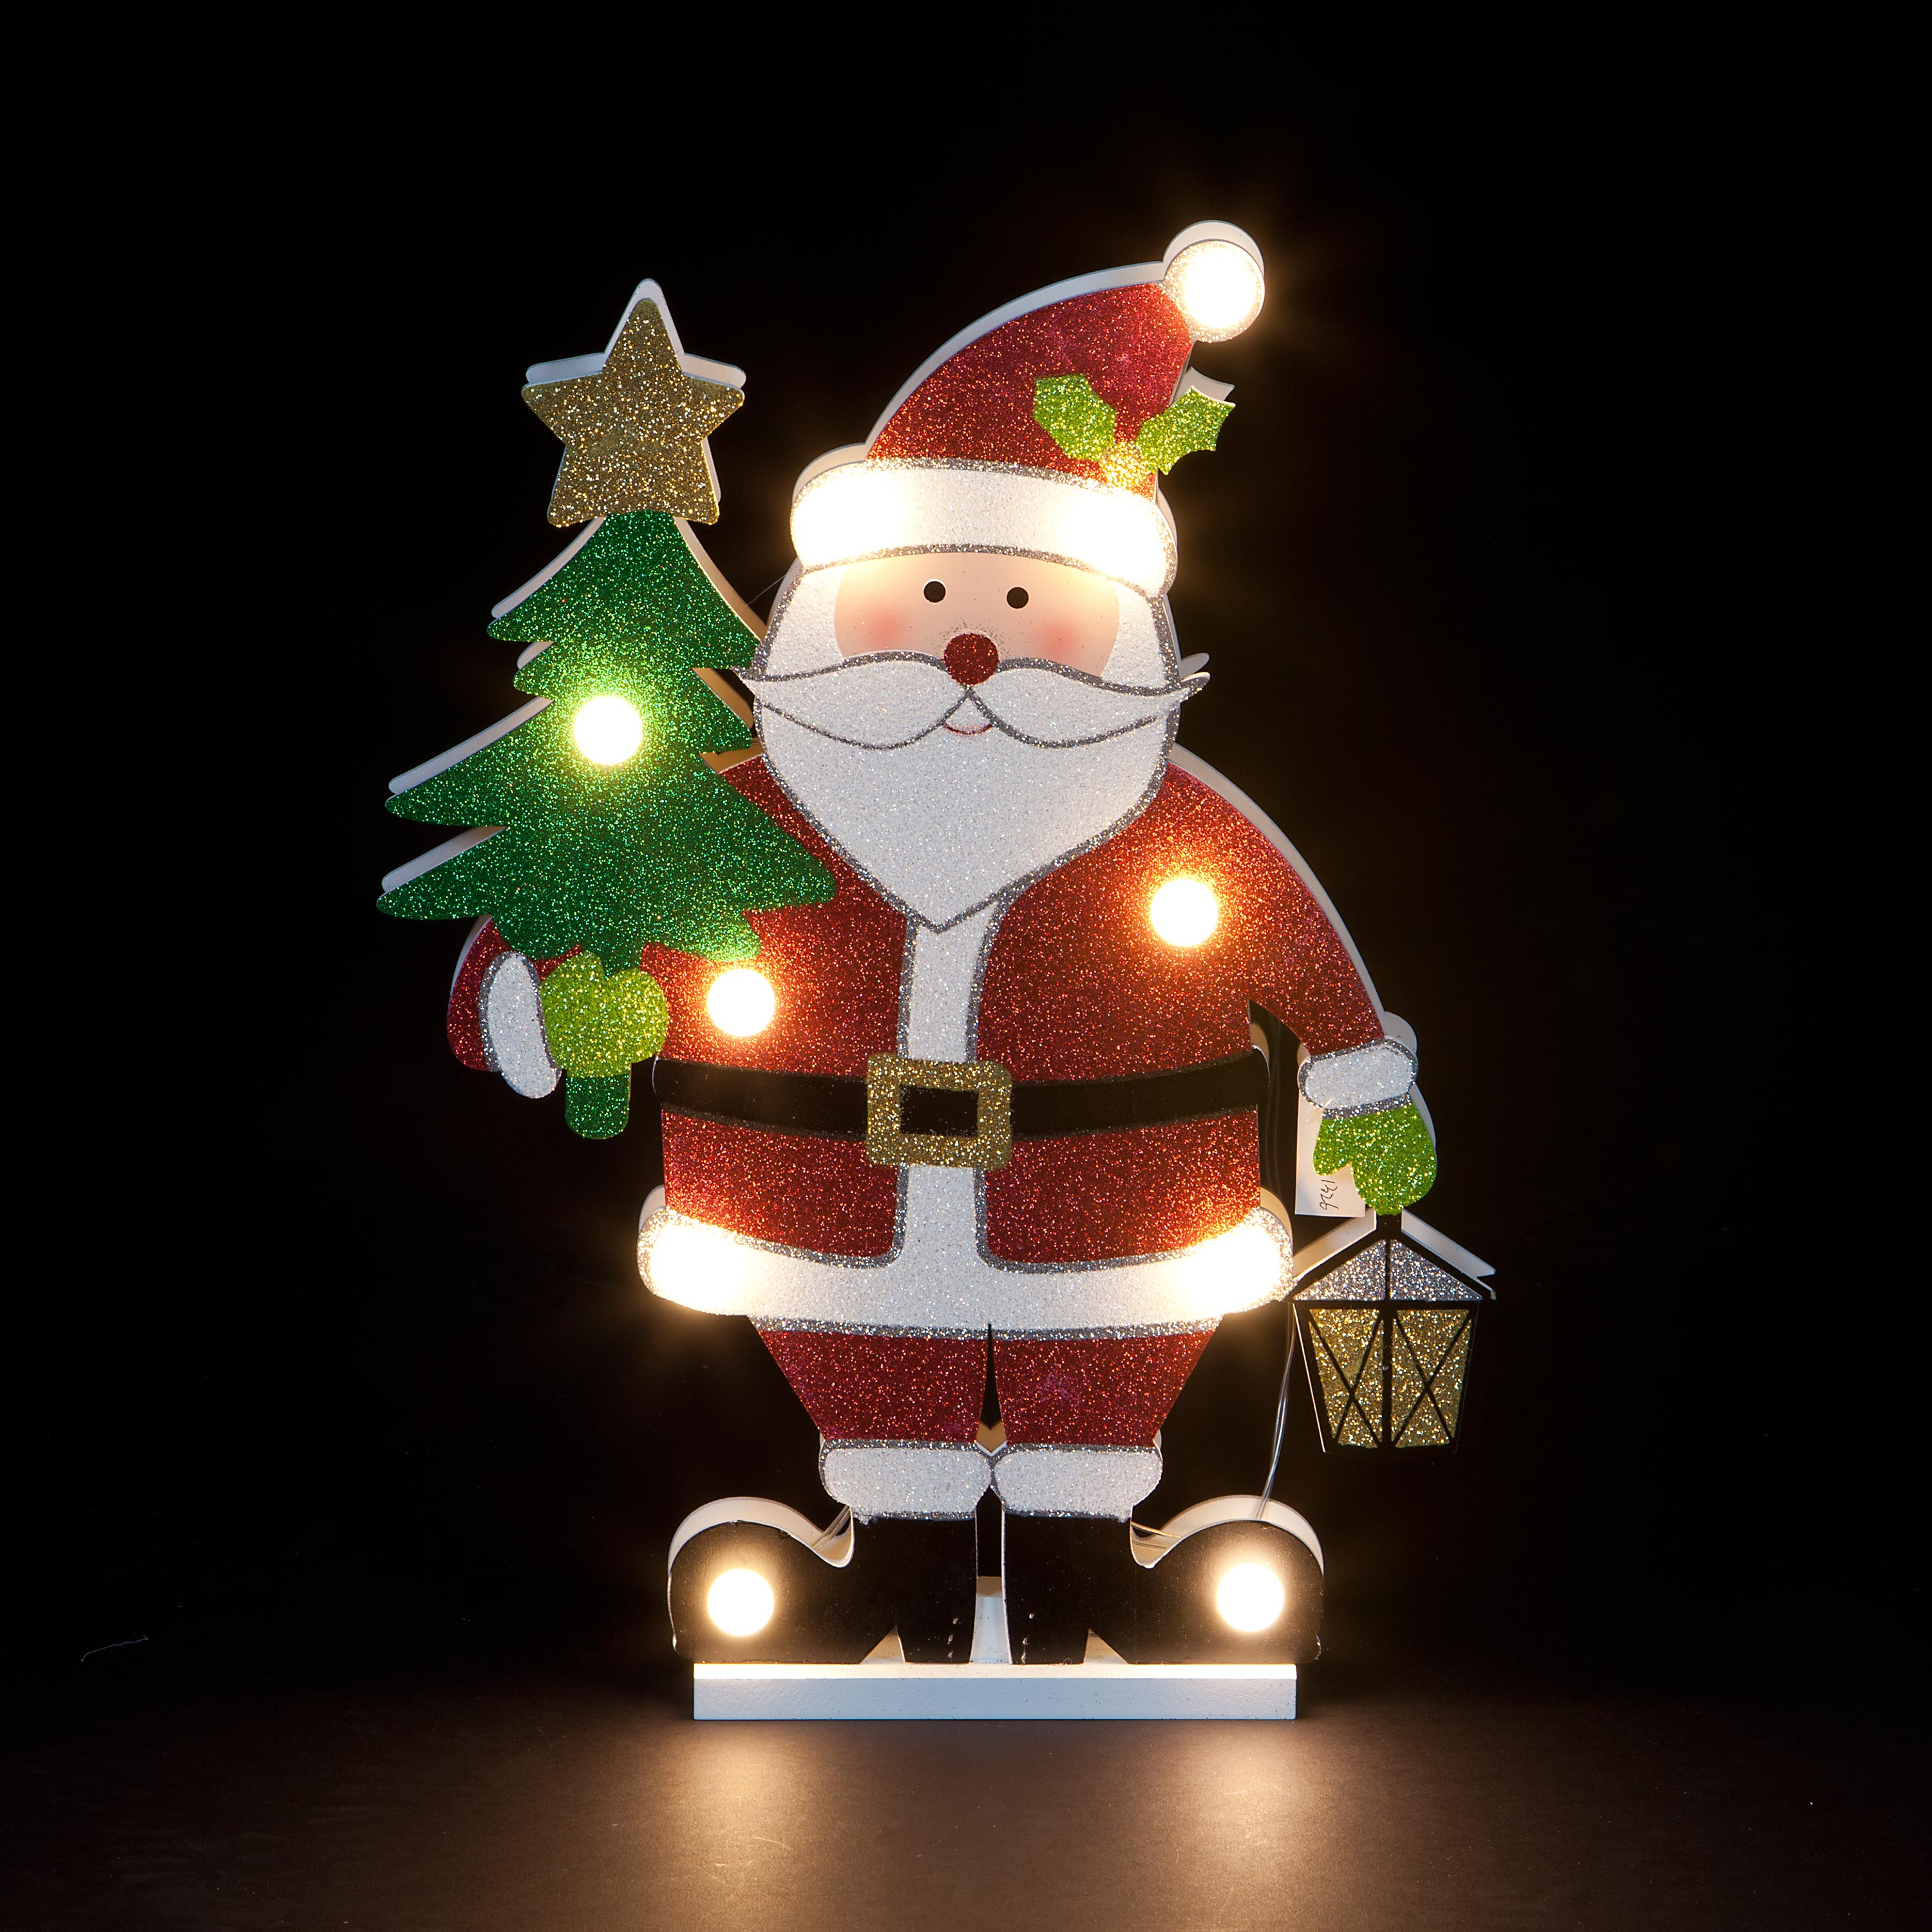 Christmas Trees and Lights Hand-Carved Illuiminated Father Christmas with Tree Figurine